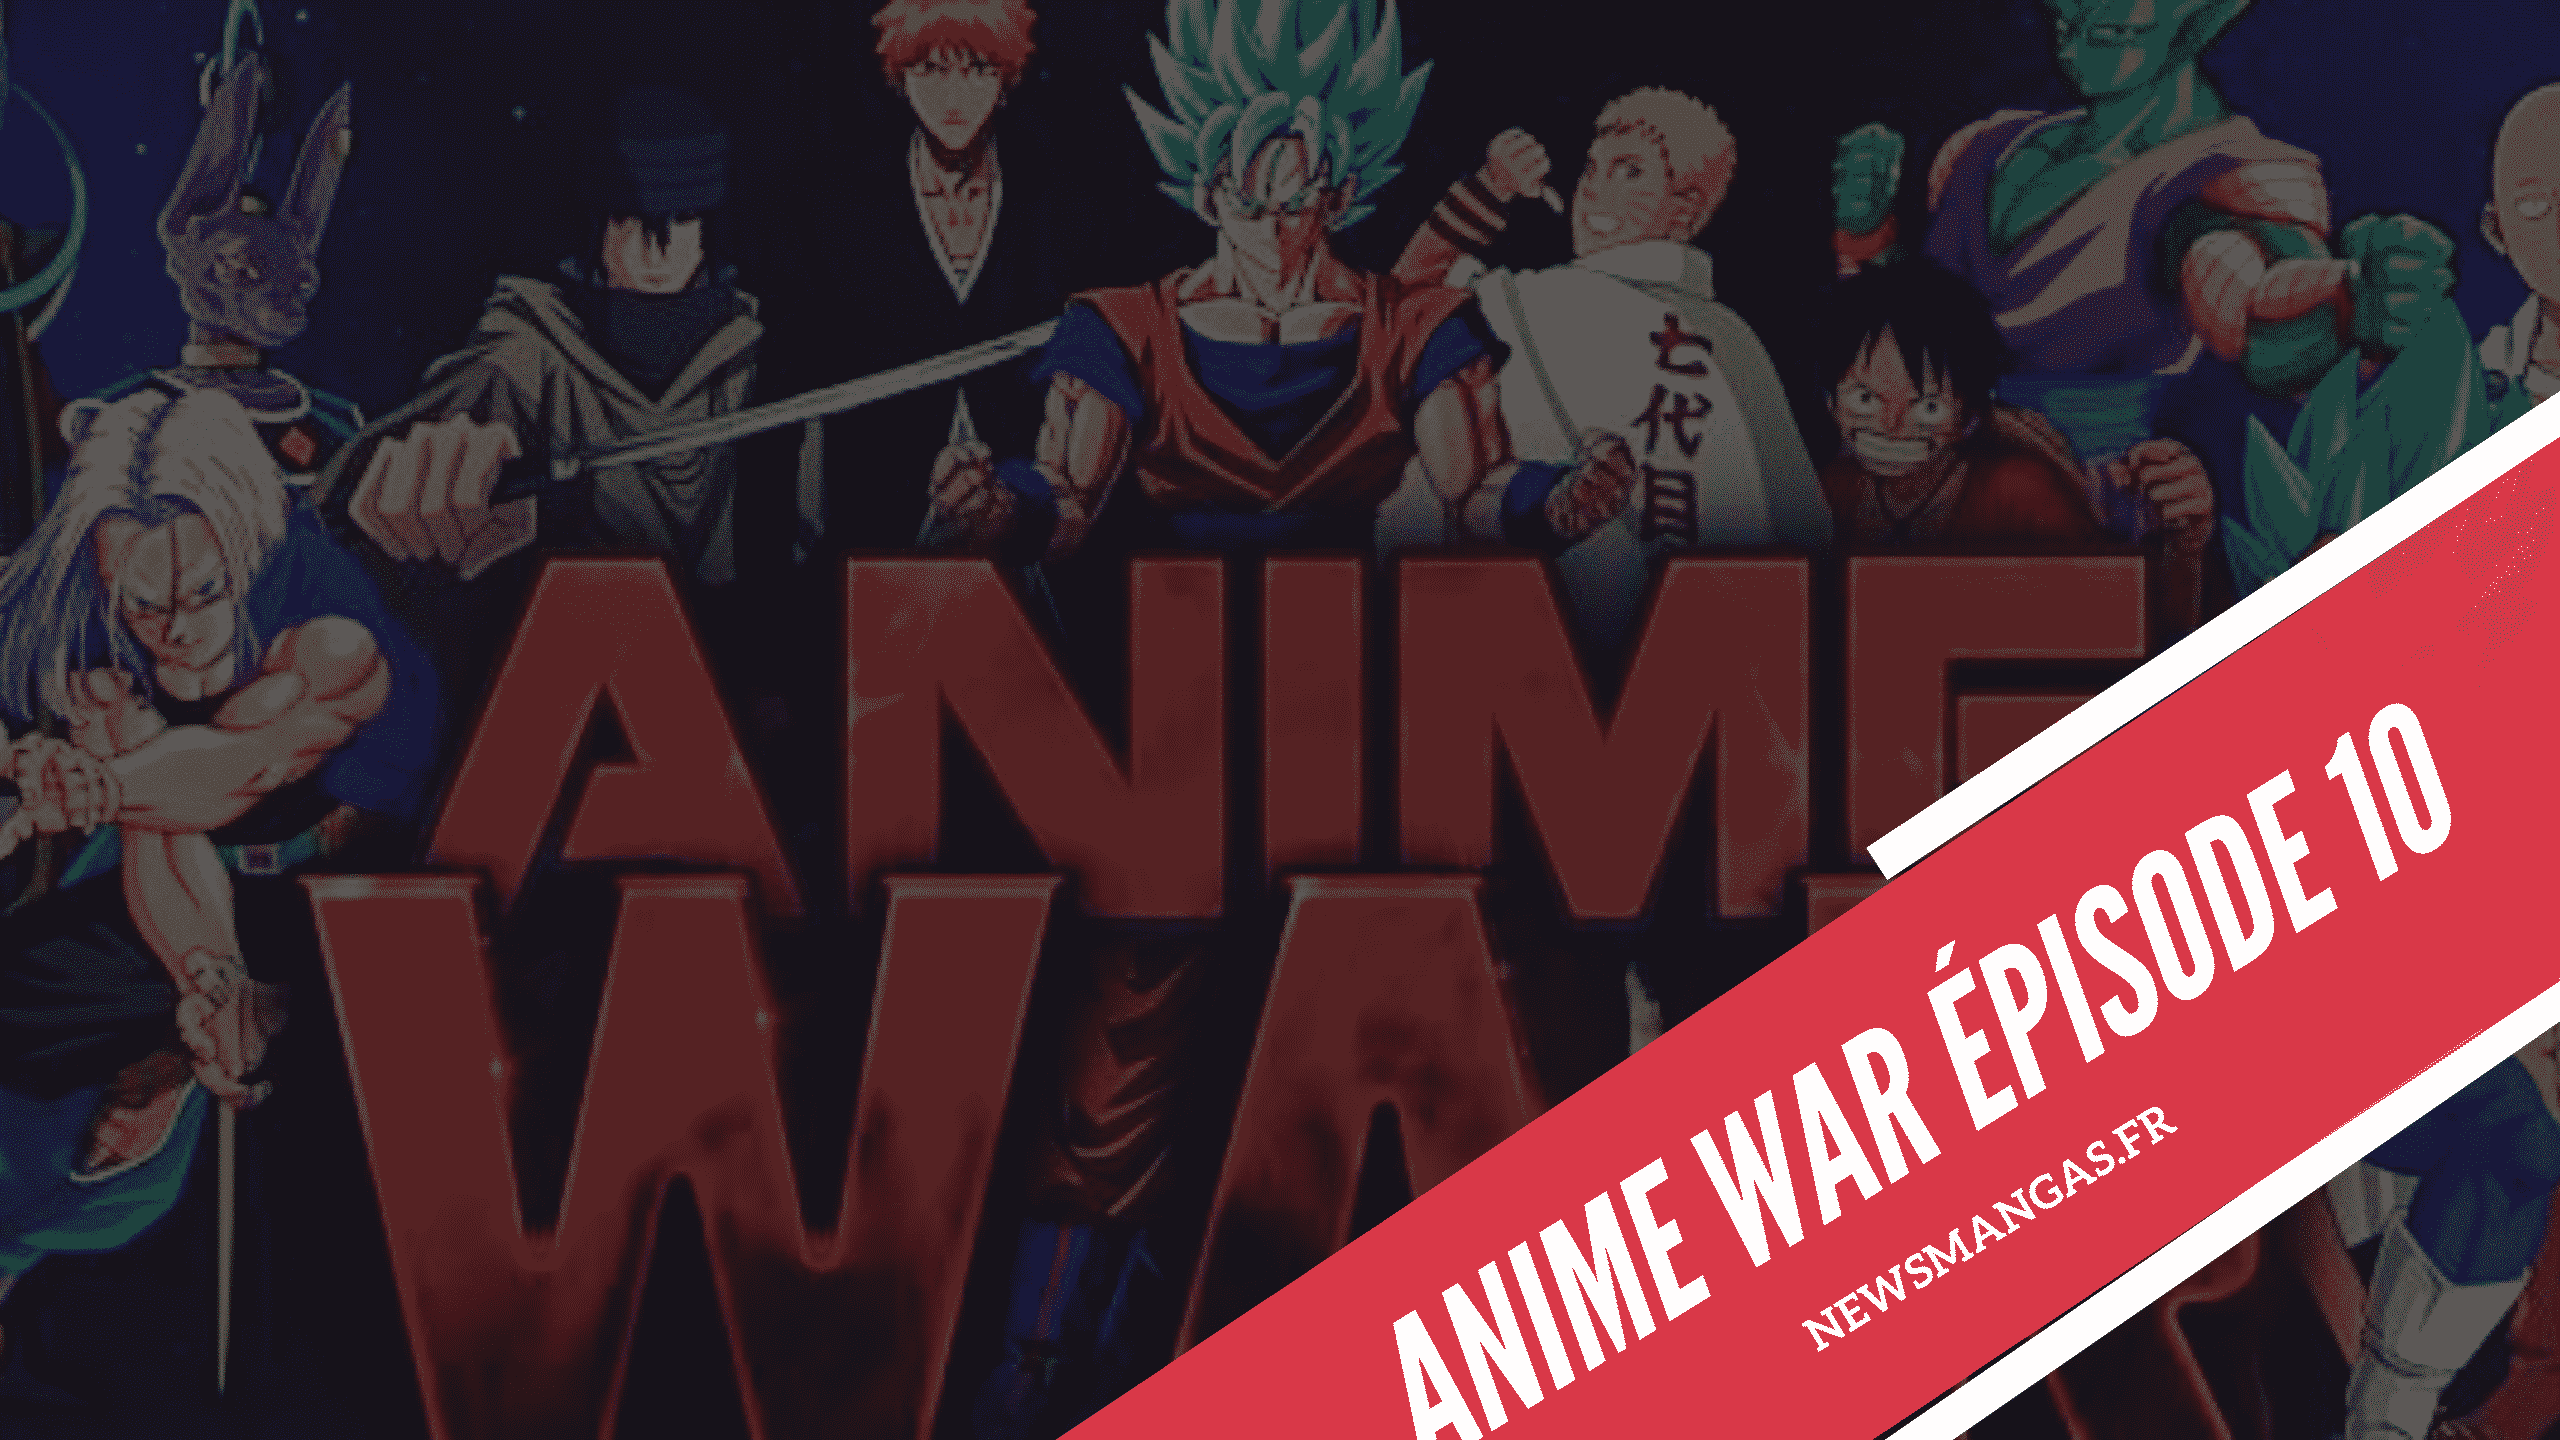 Anime War épisode 10 vostfr 1